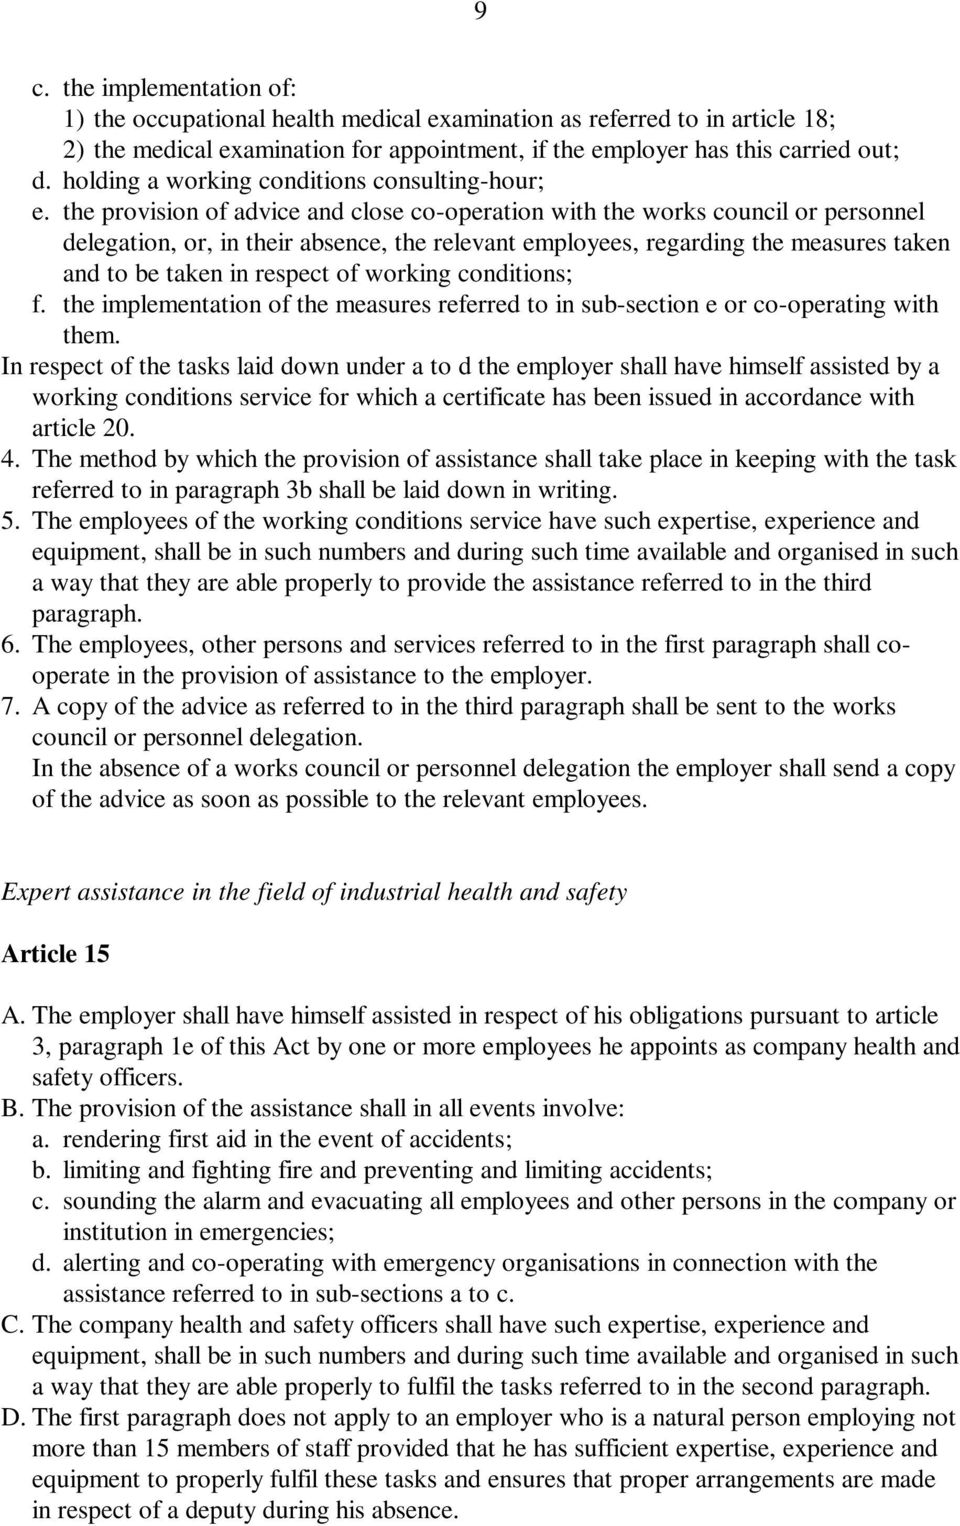 the provision of advice and close co-operation with the works council or personnel delegation, or, in their absence, the relevant employees, regarding the measures taken and to be taken in respect of